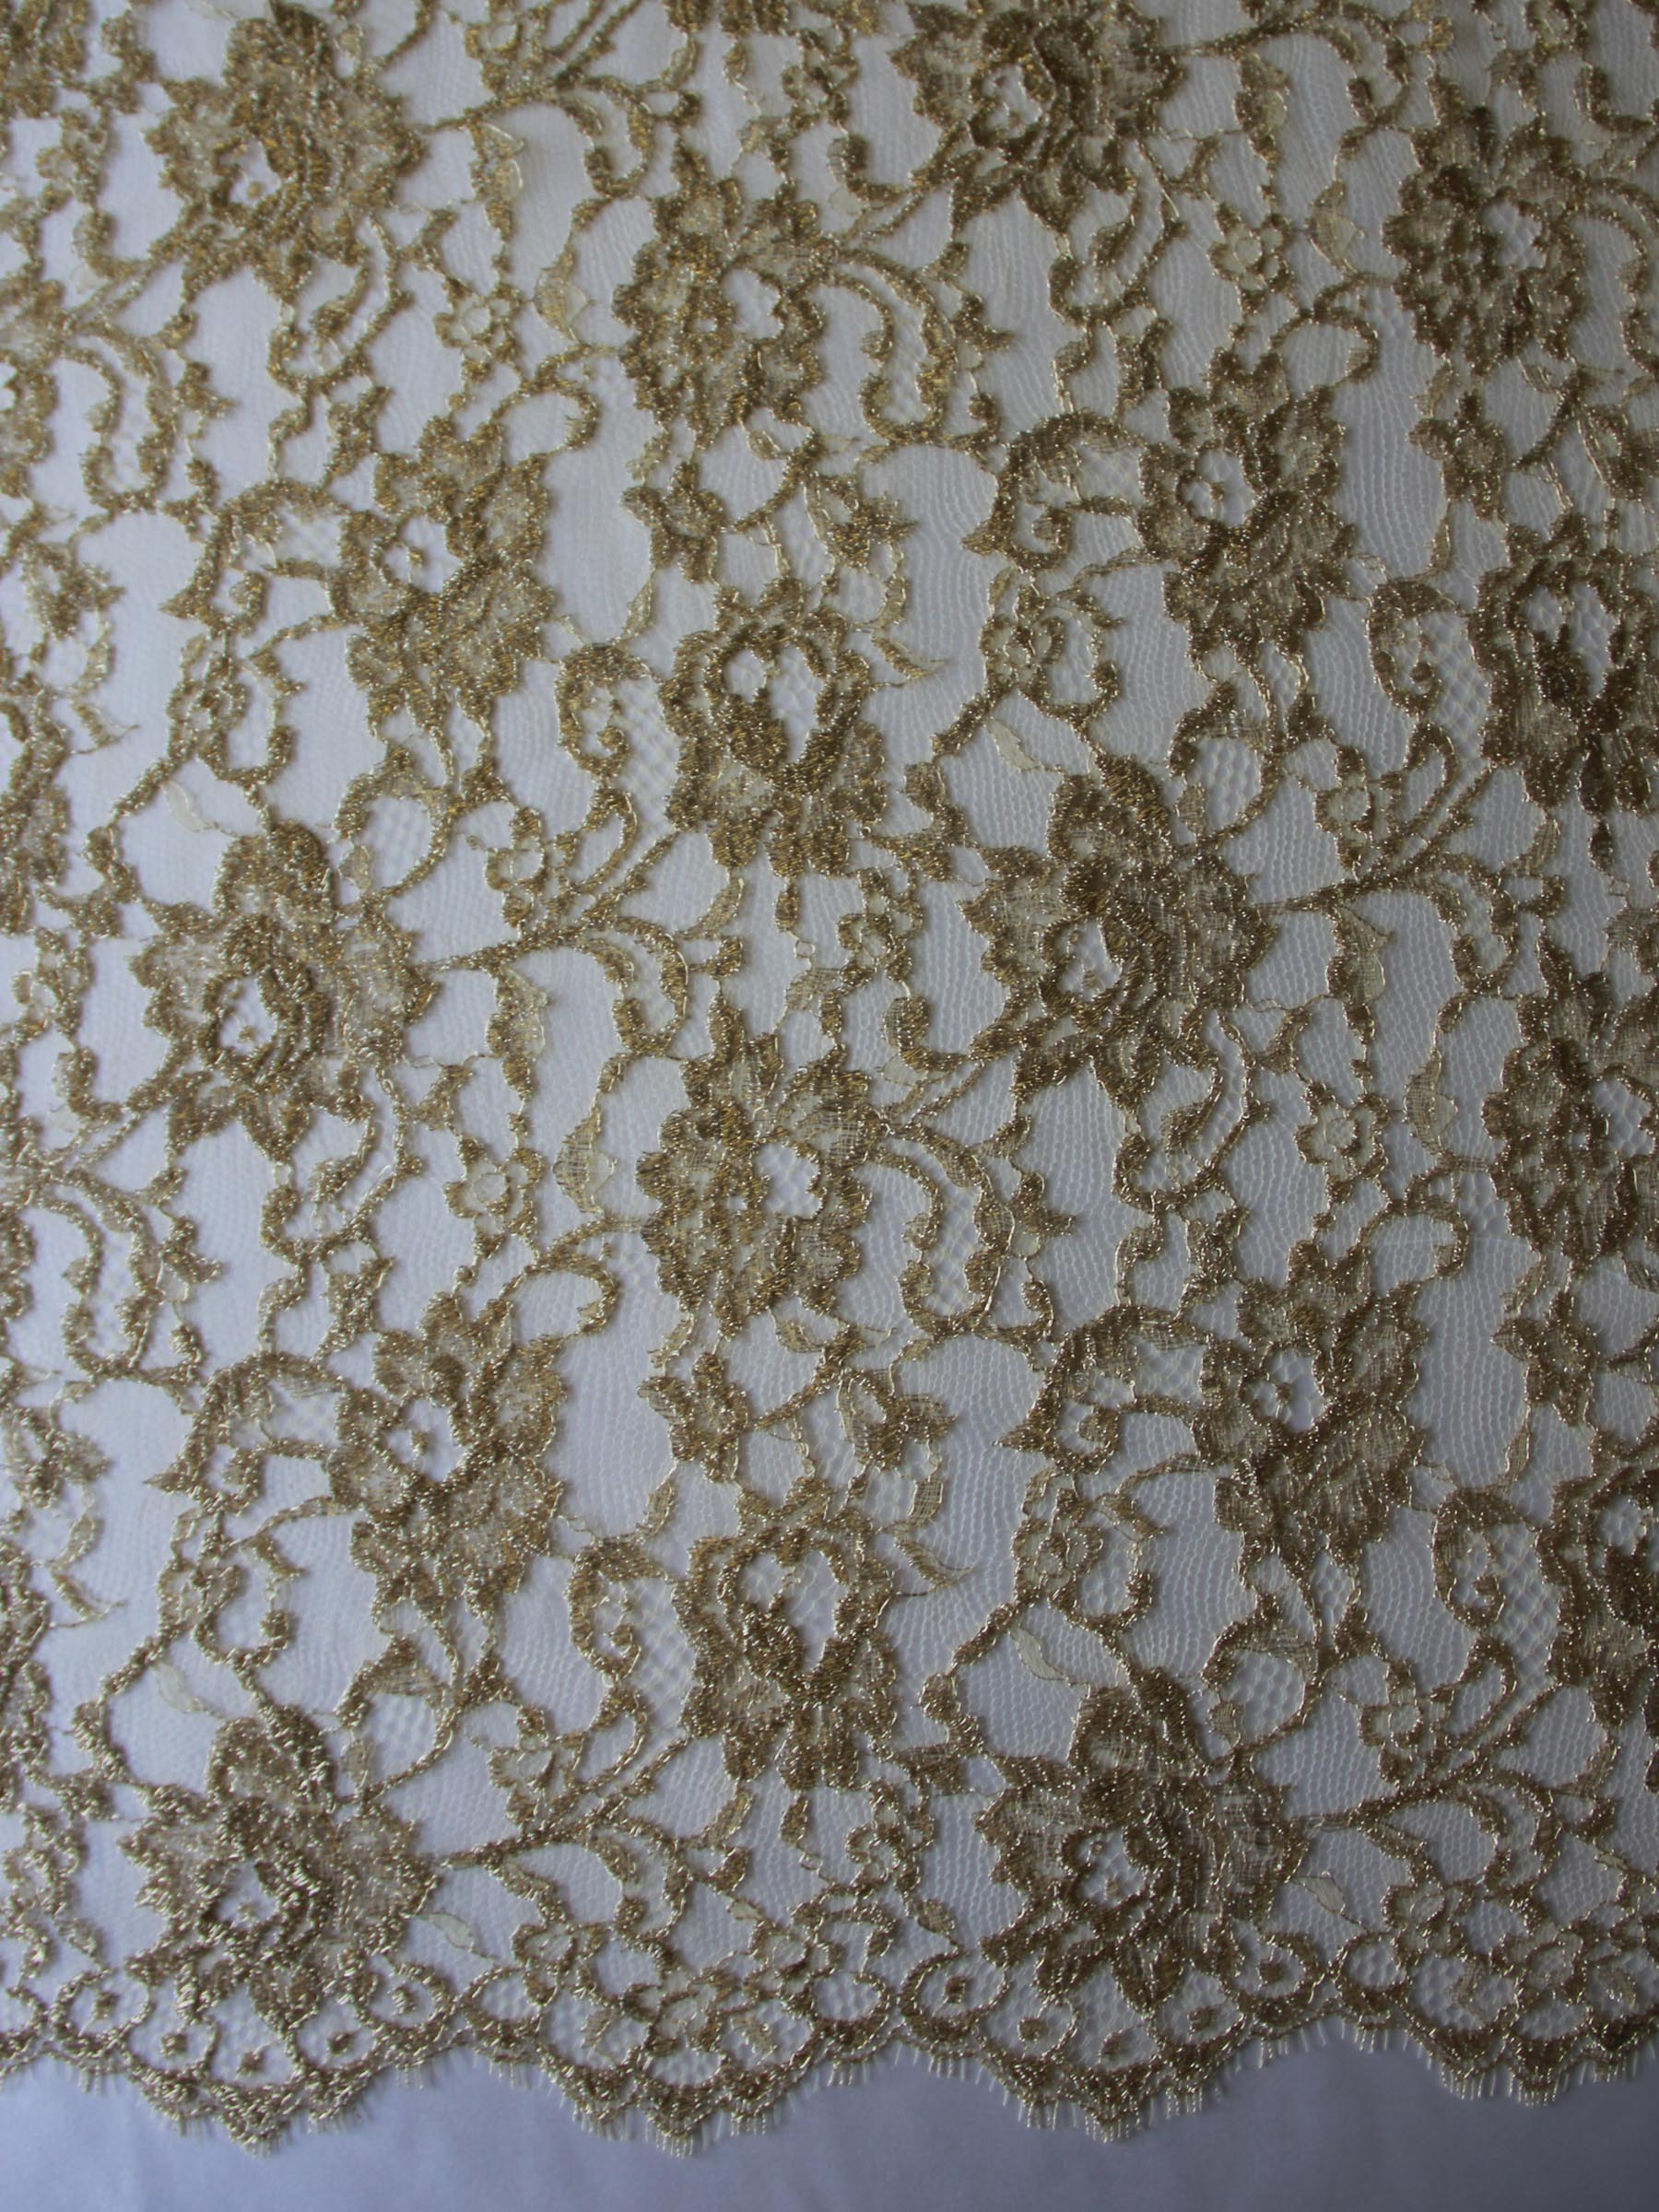 Gold Chantilly Lace - Orkney